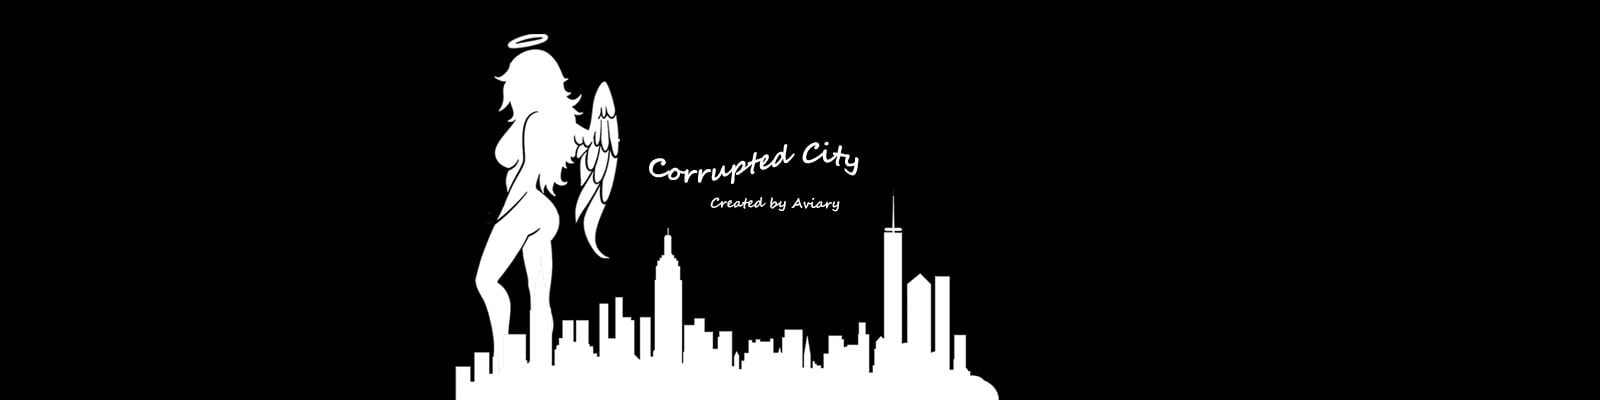 Corrupted City Game Download